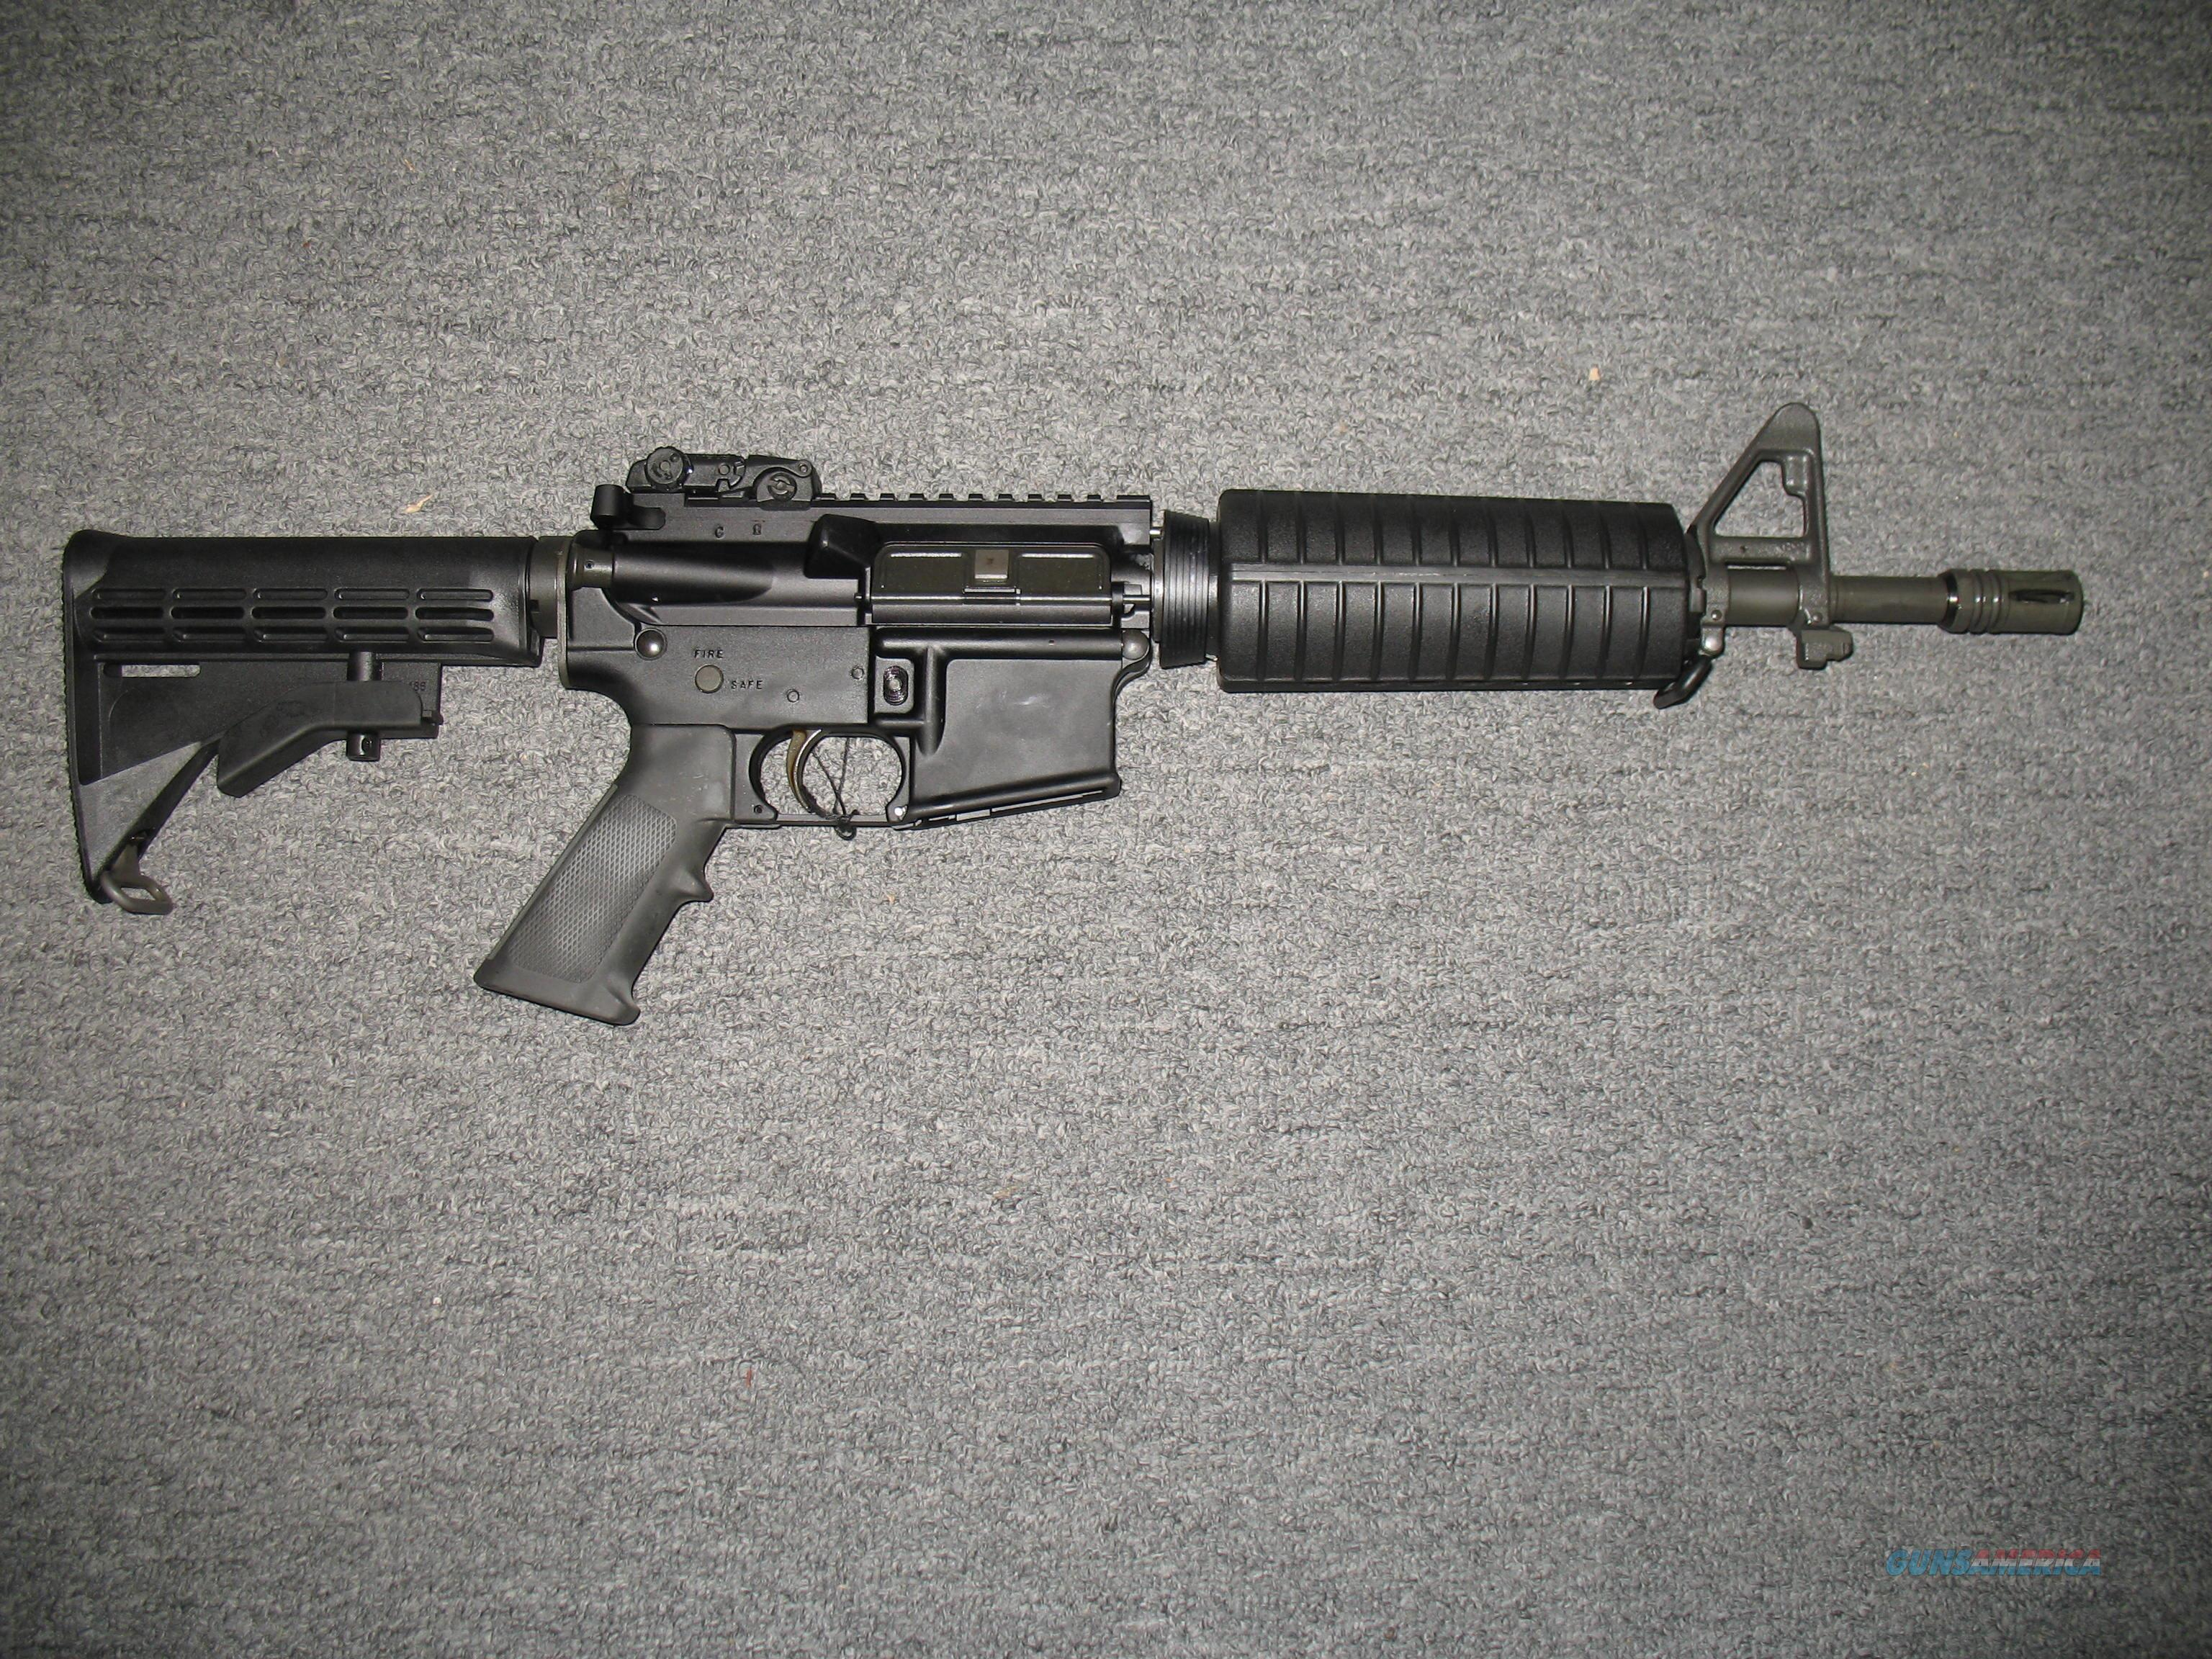 colt m4 carbine le6933 commando nfa item for sale